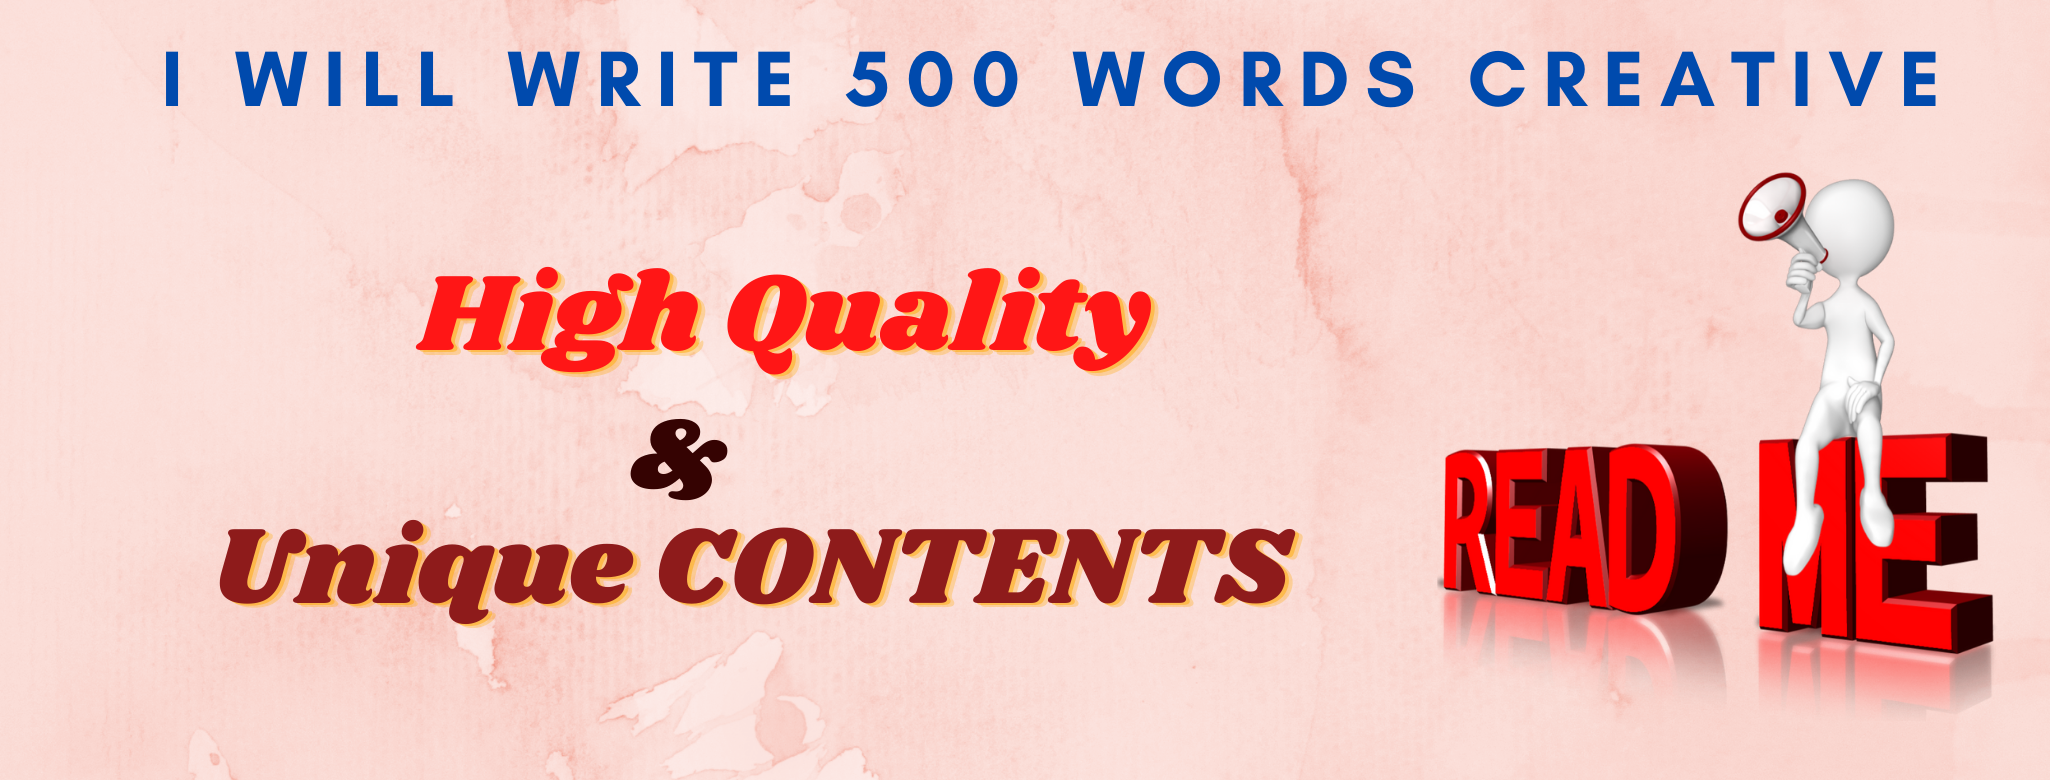 24 hour 500 words creative article writing